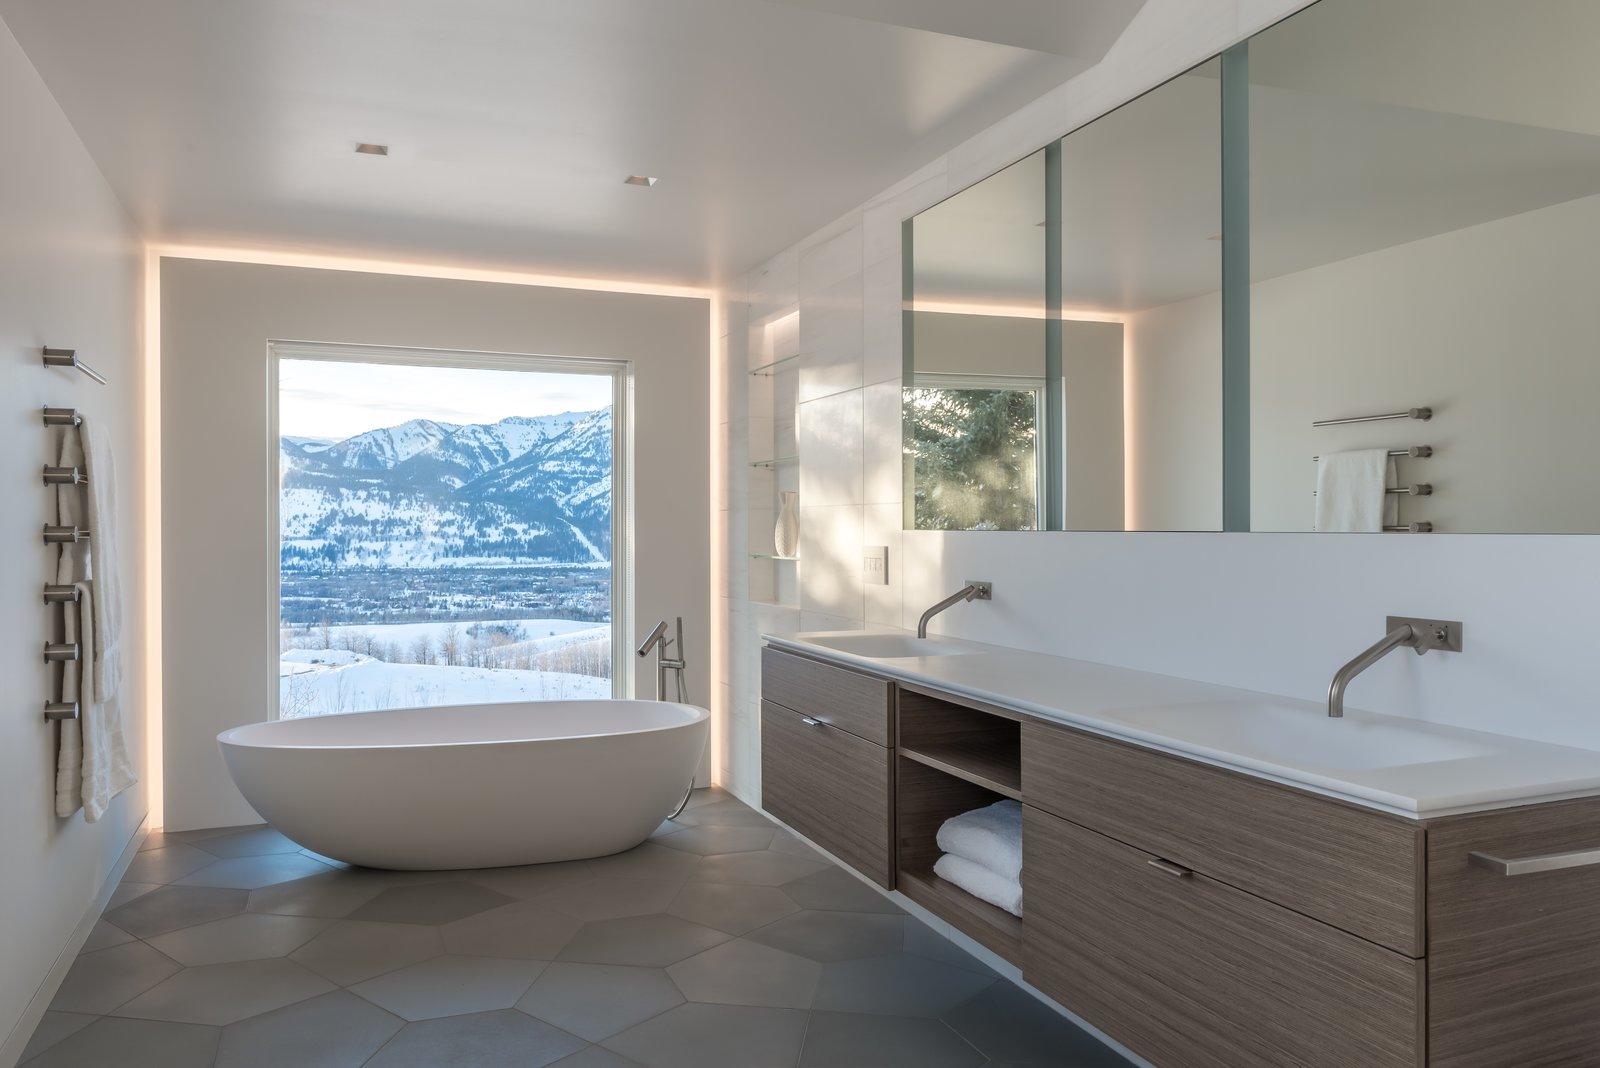 Previous master bathroom was divided into three separate spaces, with the mountain view terminating in a closet.  The walls were removed to open views to the west and create one large space.  Custom pentagon shaped concrete tiles compliment the Eco-Wood veneer floating vanity.